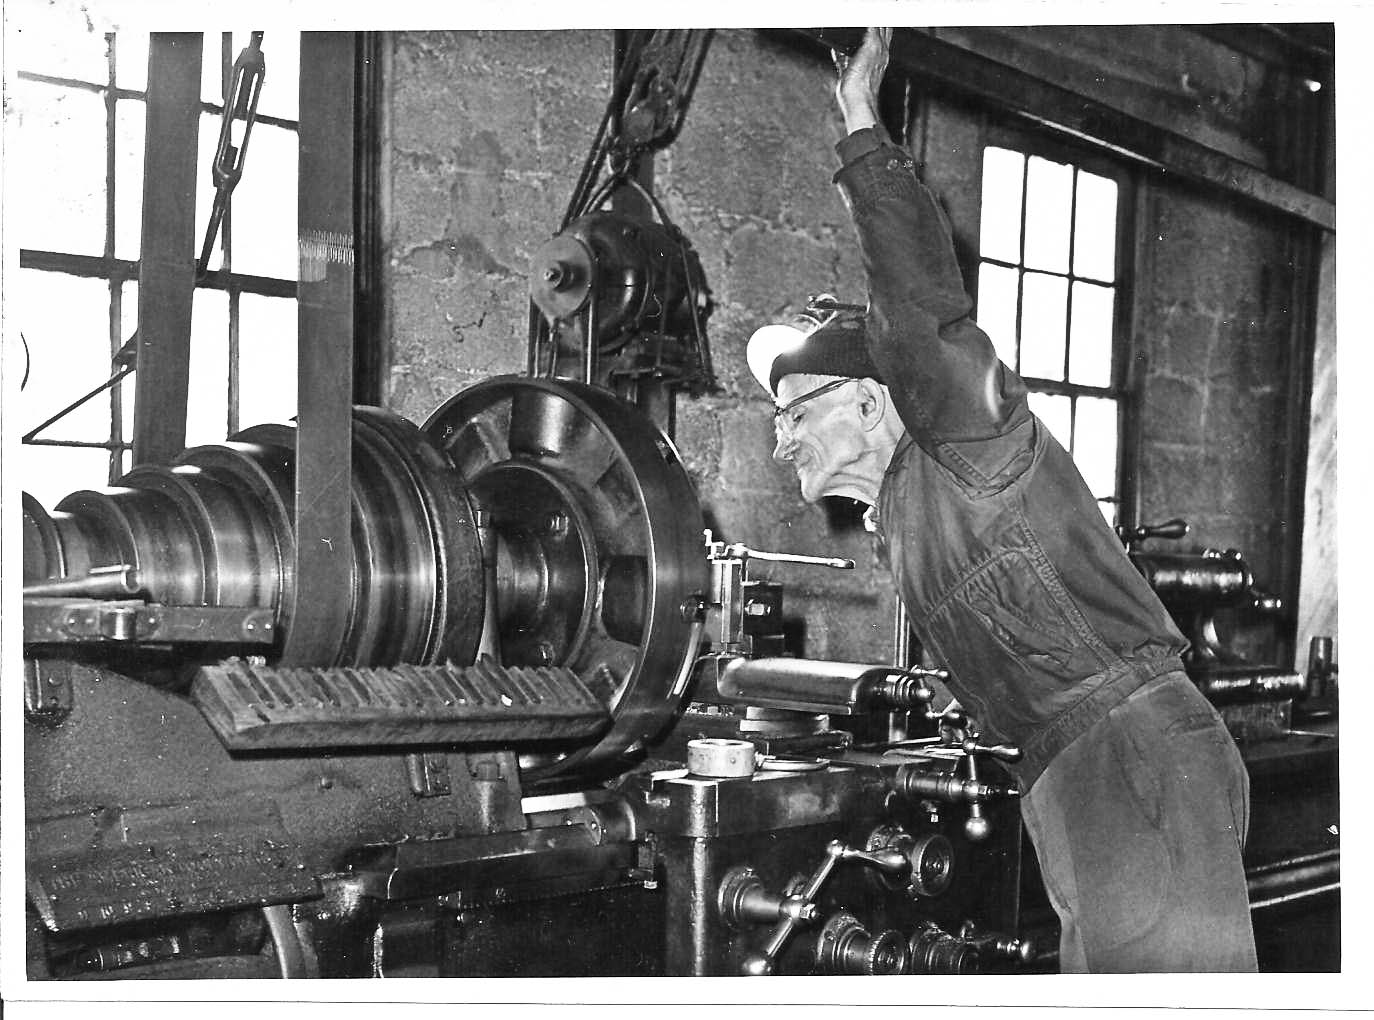 The Machine Shop of Yesteryear | Is this load bearing?